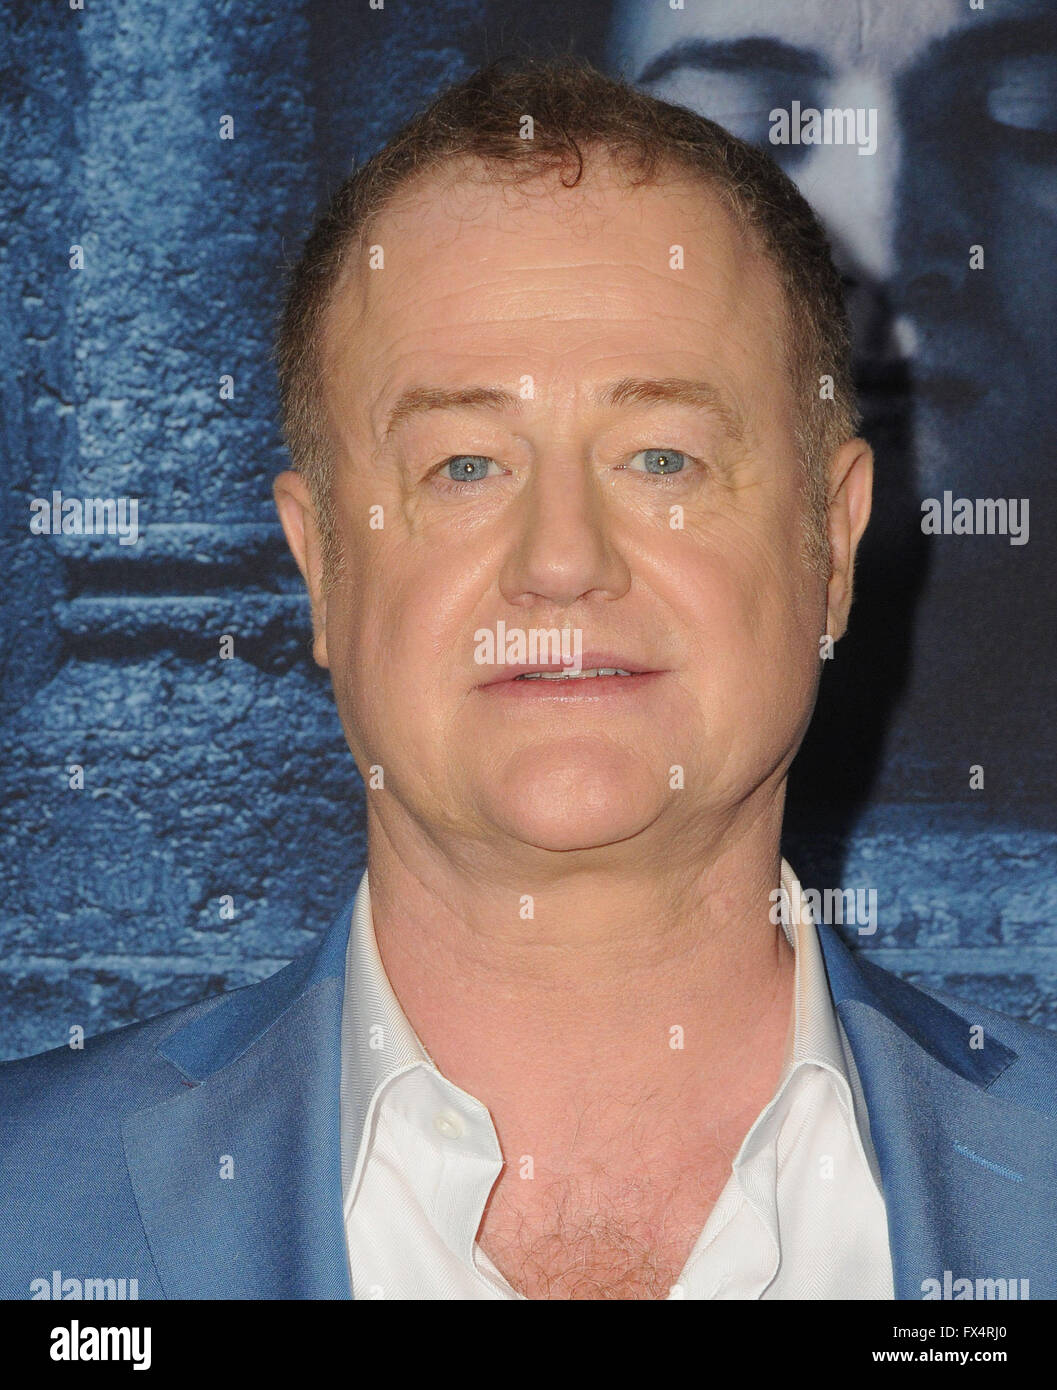 Hollywood, CA, USA. 10th Apr, 2016. 10 April 2016 - Hollywood, California - Owen Teale. Arrivals for the Premiere Stock Photo